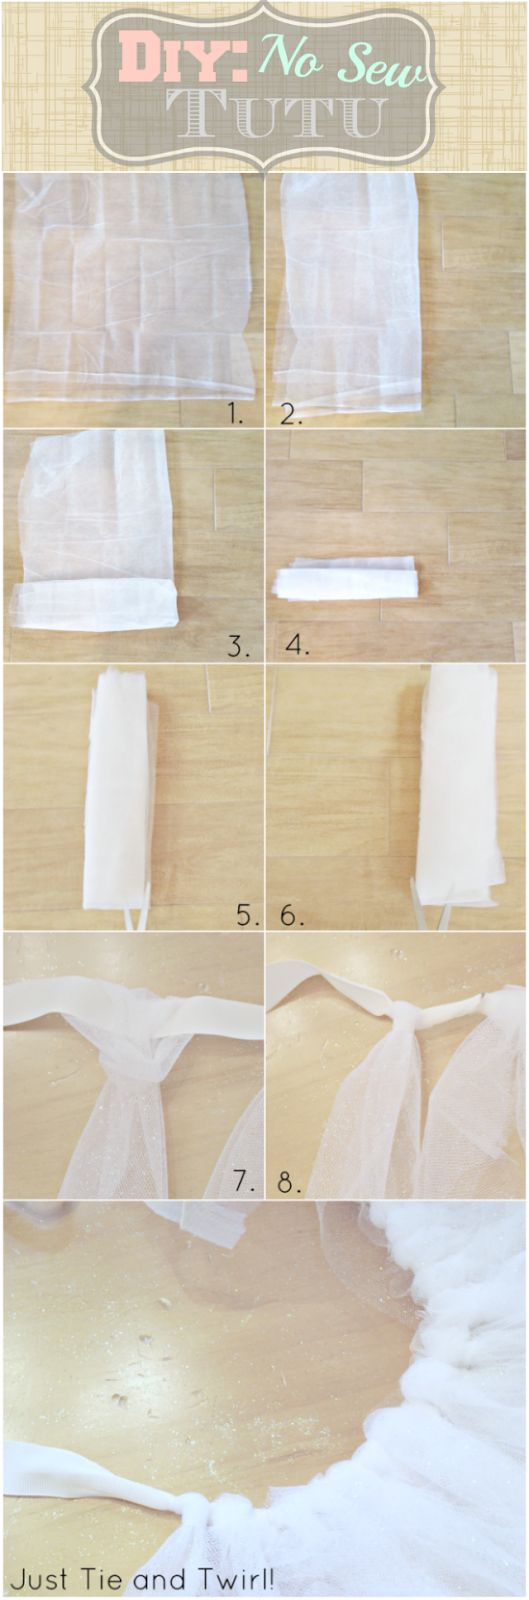 #DIY - No Sew #Tutu on Fawn Over #Baby